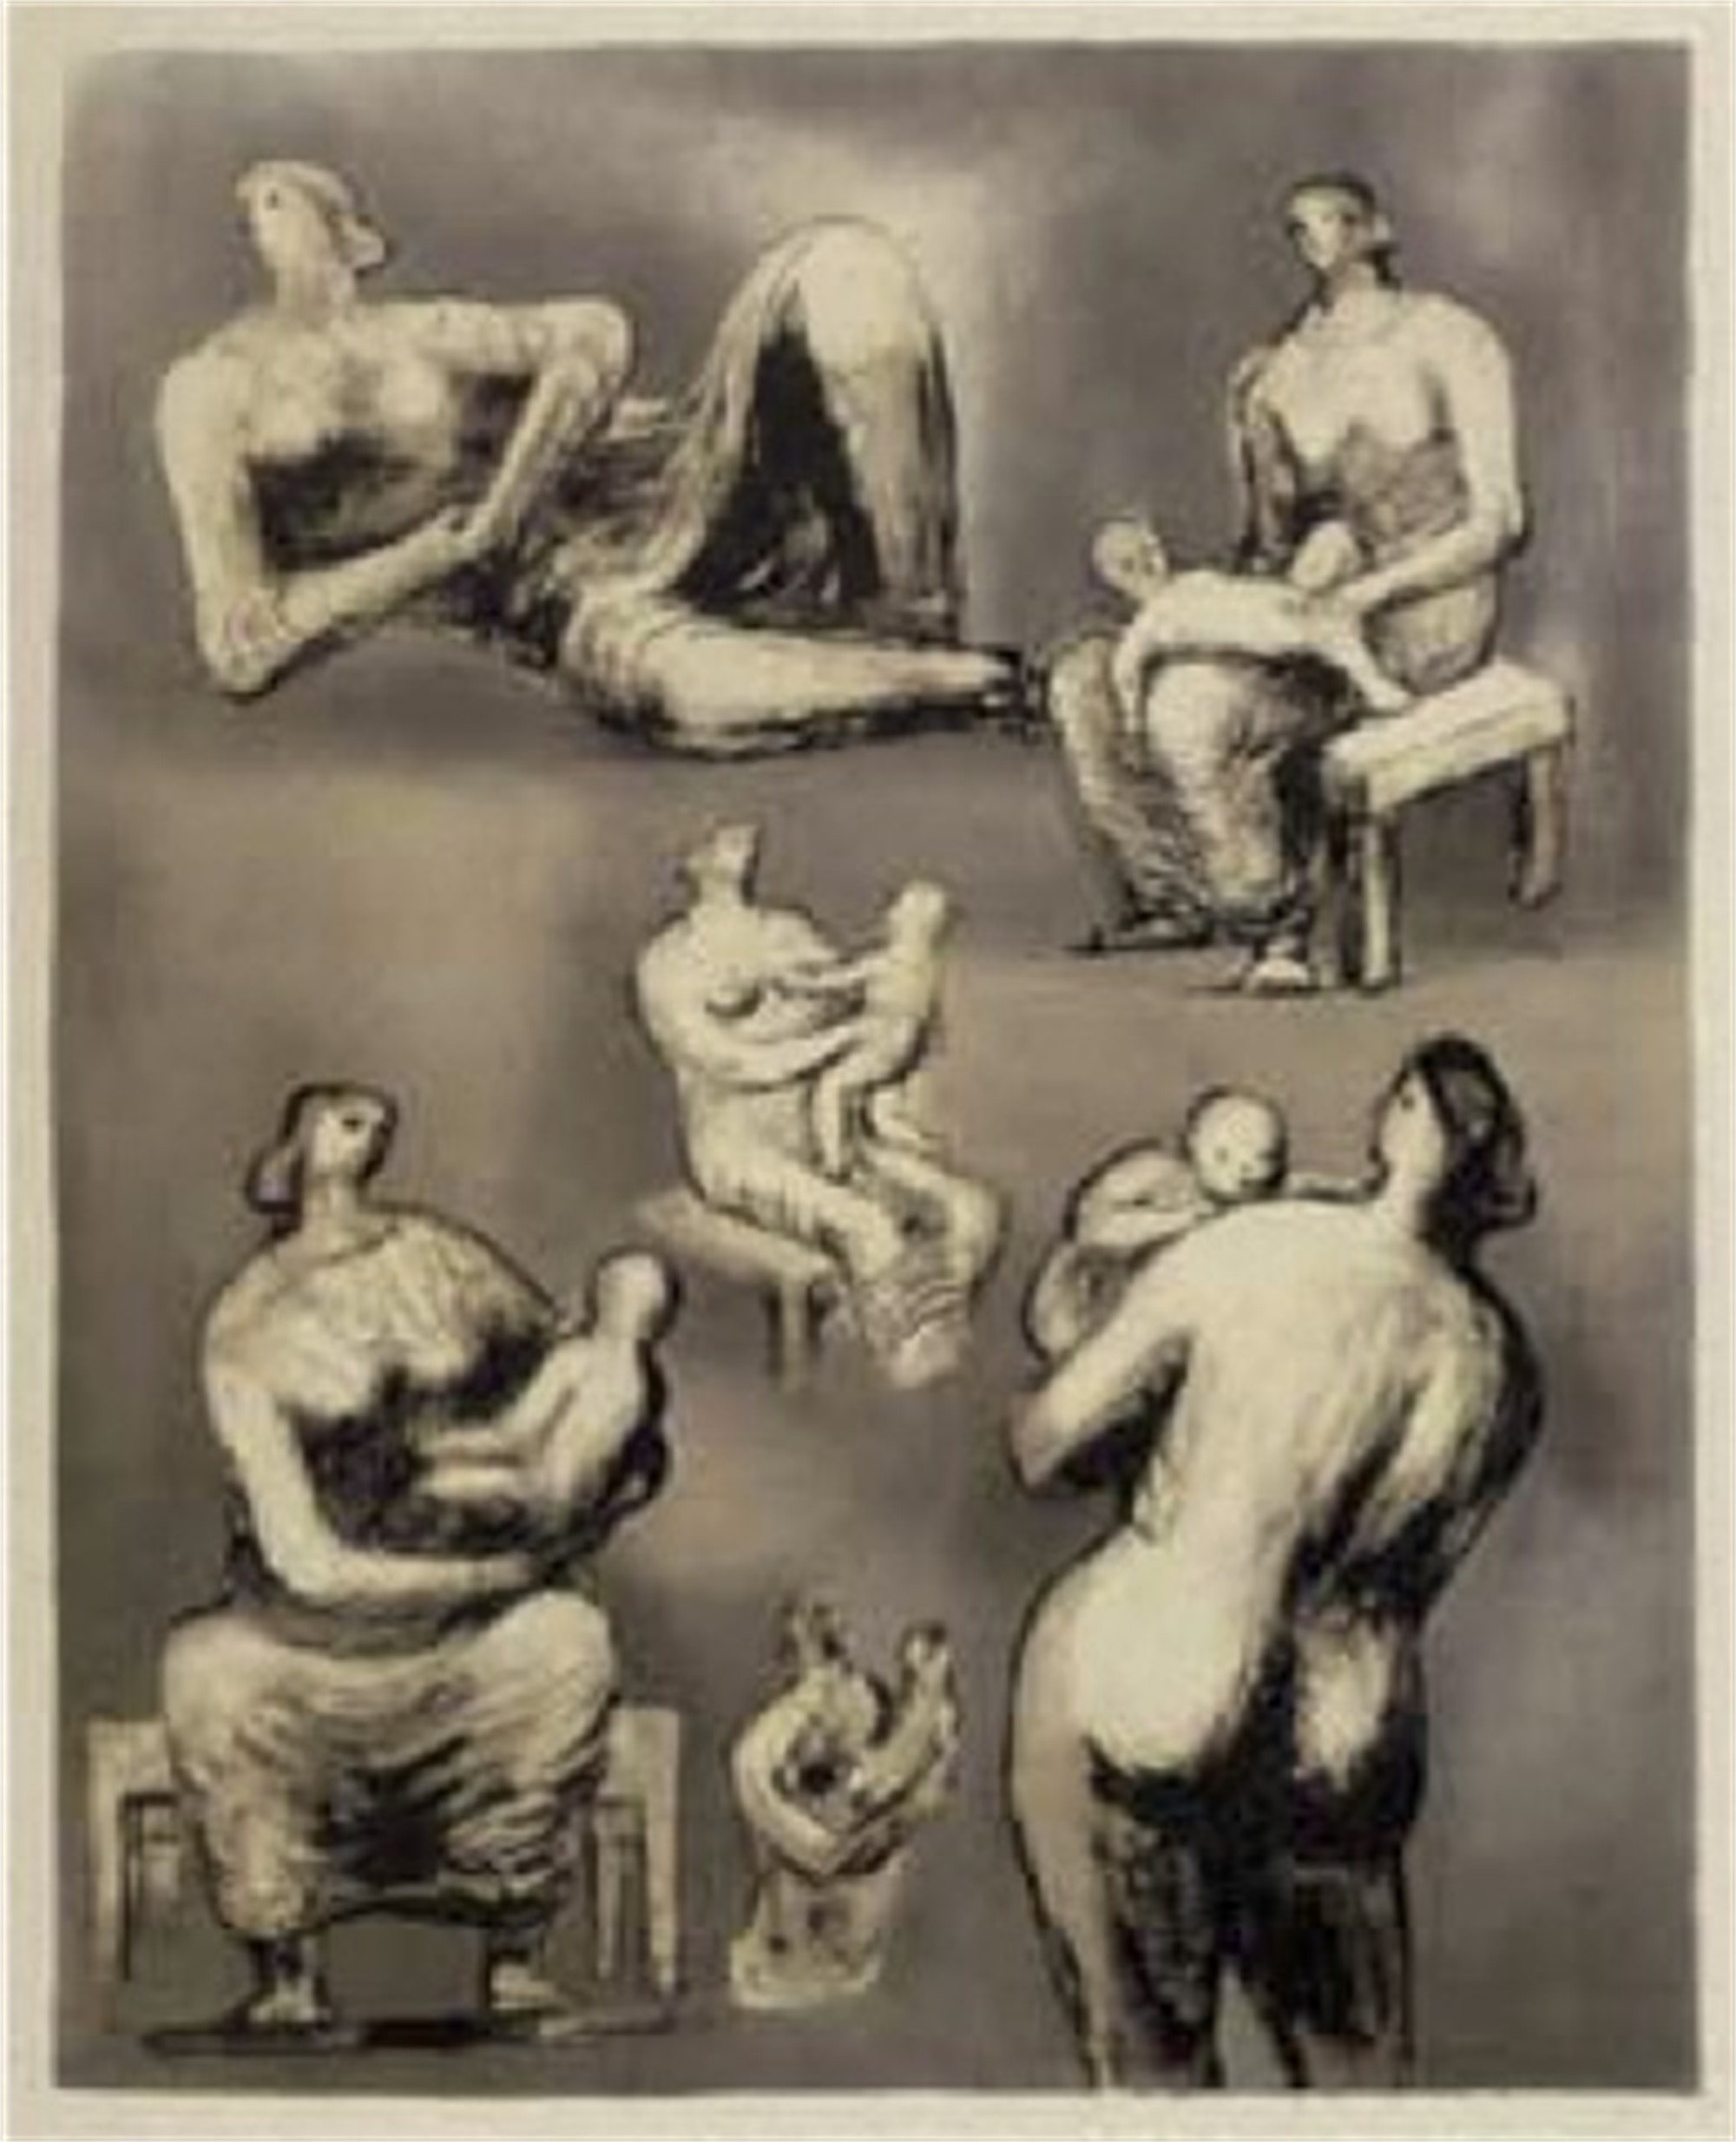 Reclining Figure and Mother and Child Studies by Henry Moore